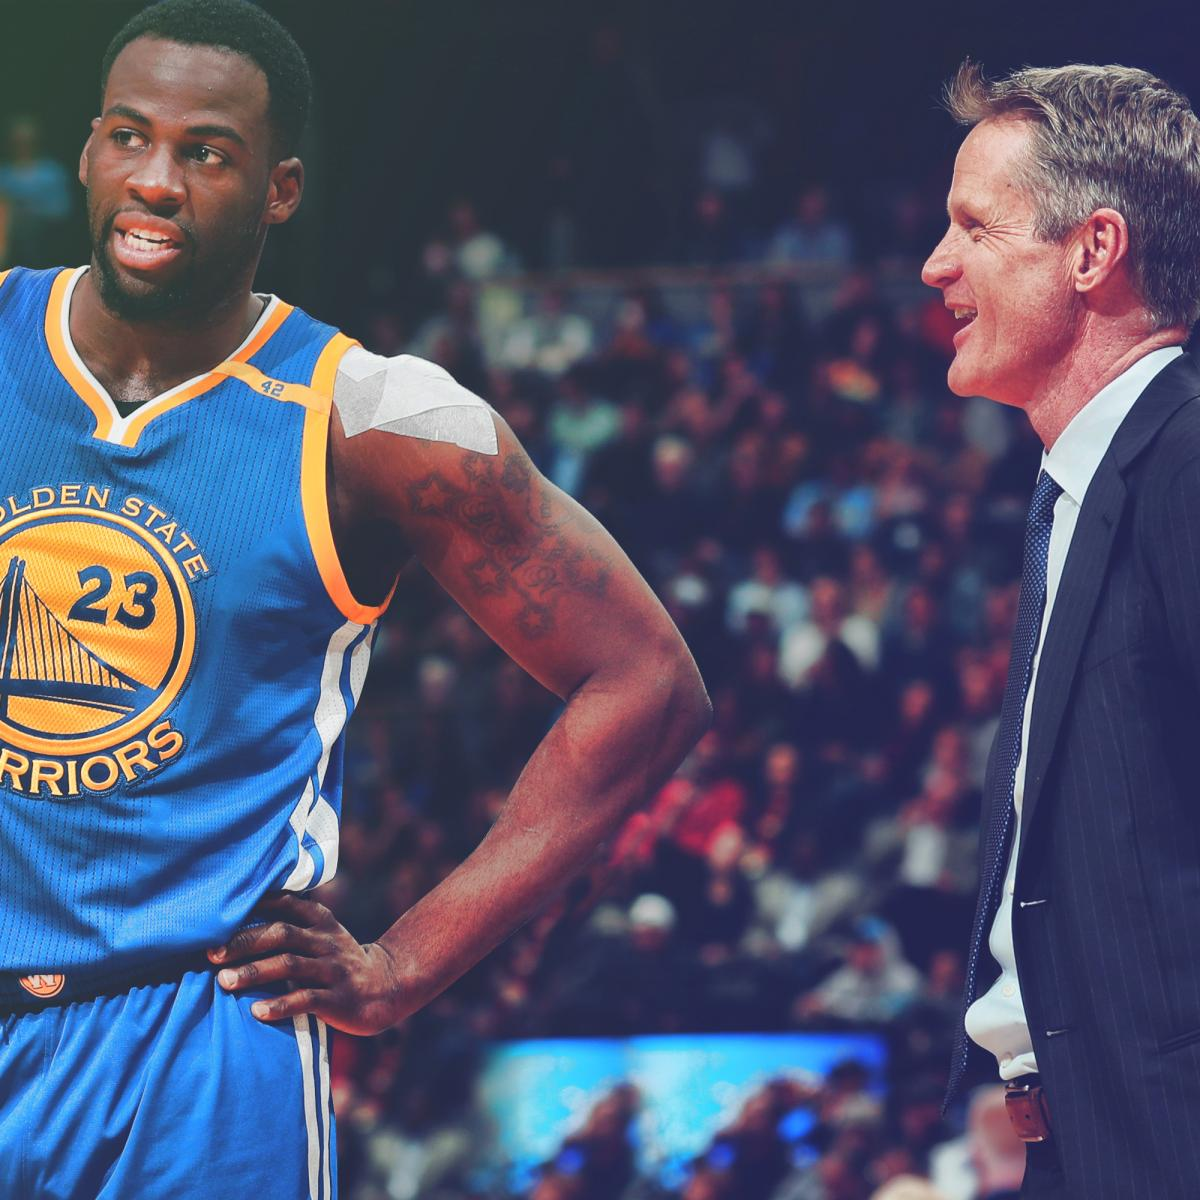 Warriors Come Out To Play Bleacher Report: Kerr And Draymond's Relationship Nearly Destroyed Warriors